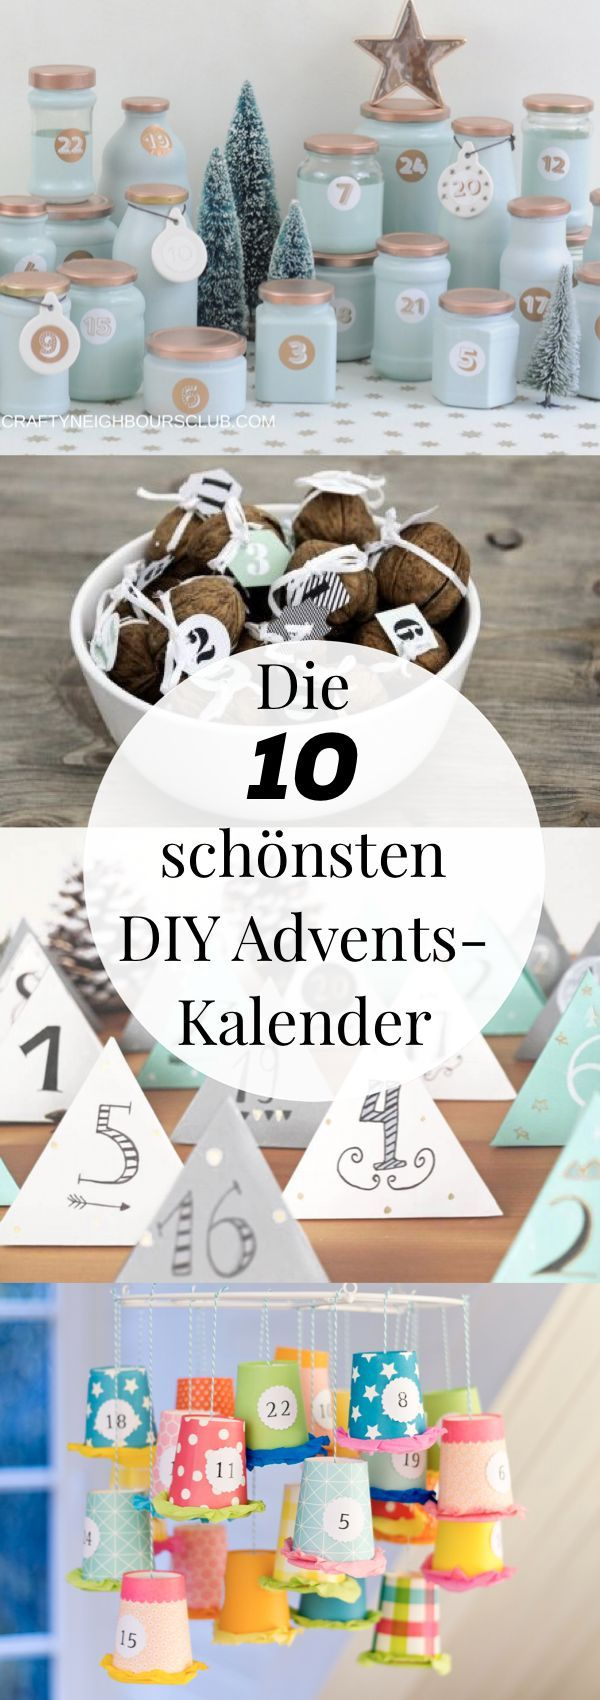 adventskalender basteln 10 kreative bastelideen diy anleitungen kreatives pinterest. Black Bedroom Furniture Sets. Home Design Ideas